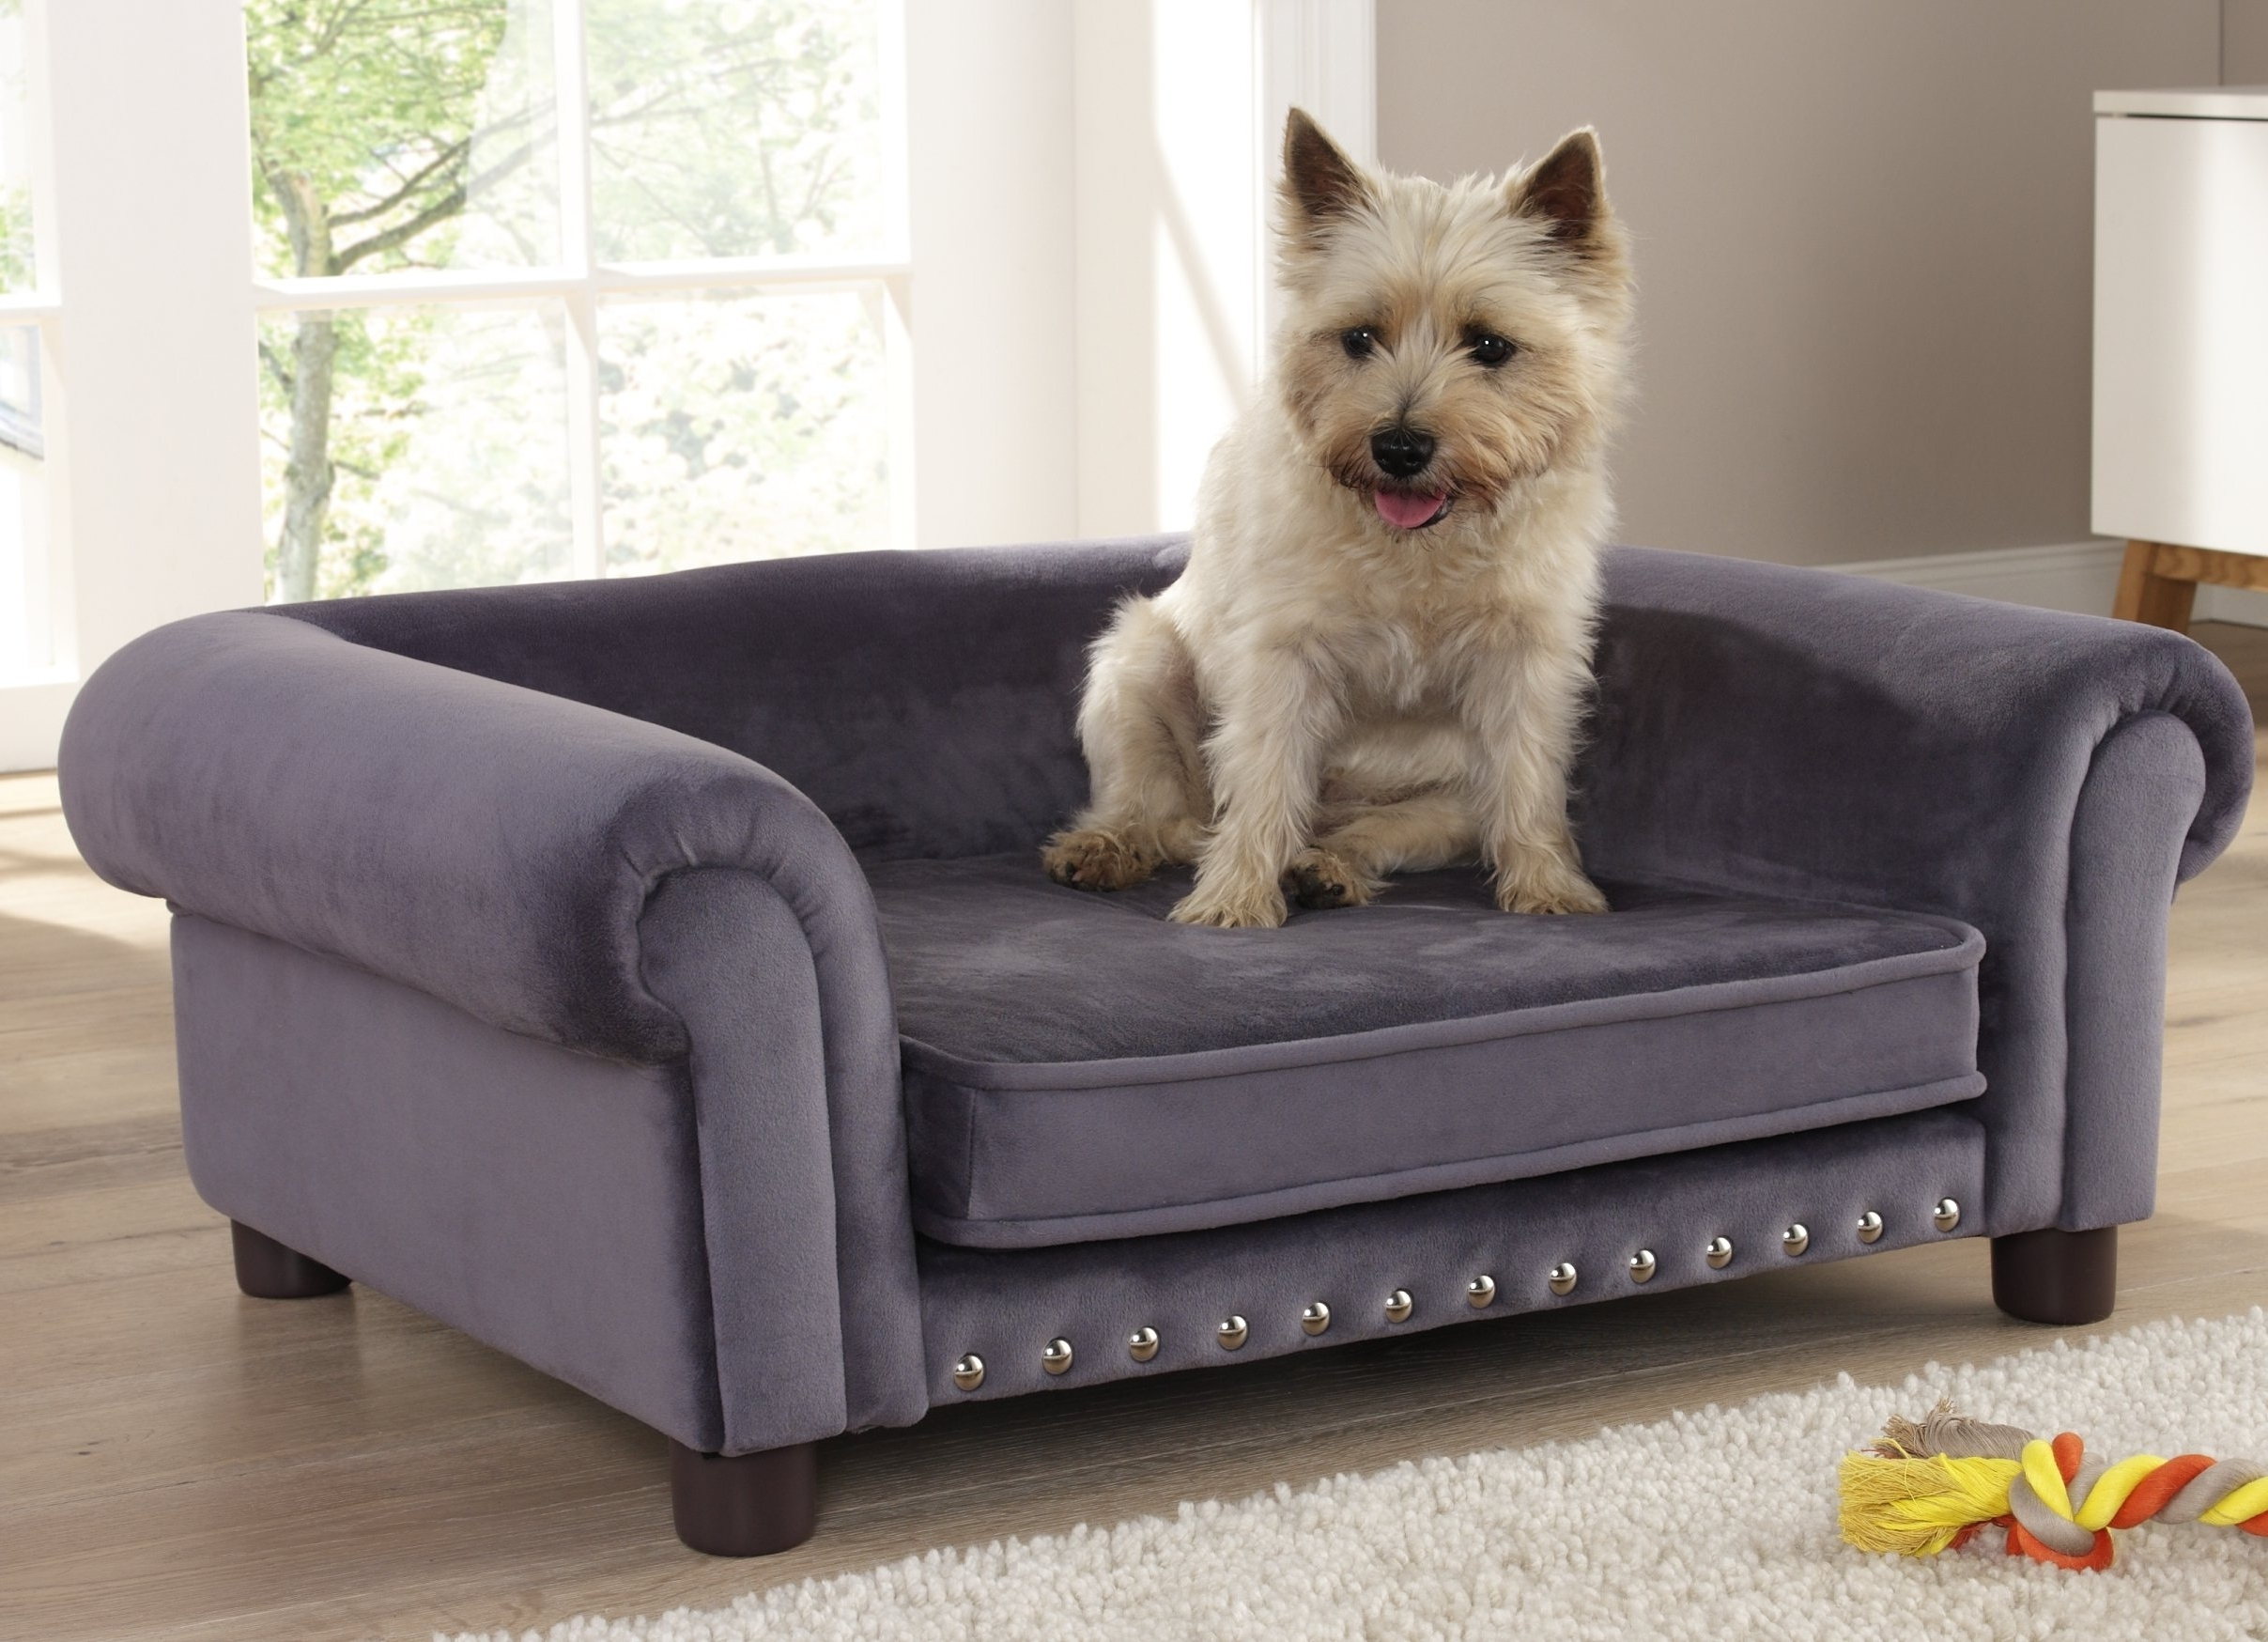 Sofas : Pet Settee Dog Sofas And Chairs Dog Settee Dog Chaise Within Trendy Dog Chaise Lounges (View 15 of 15)